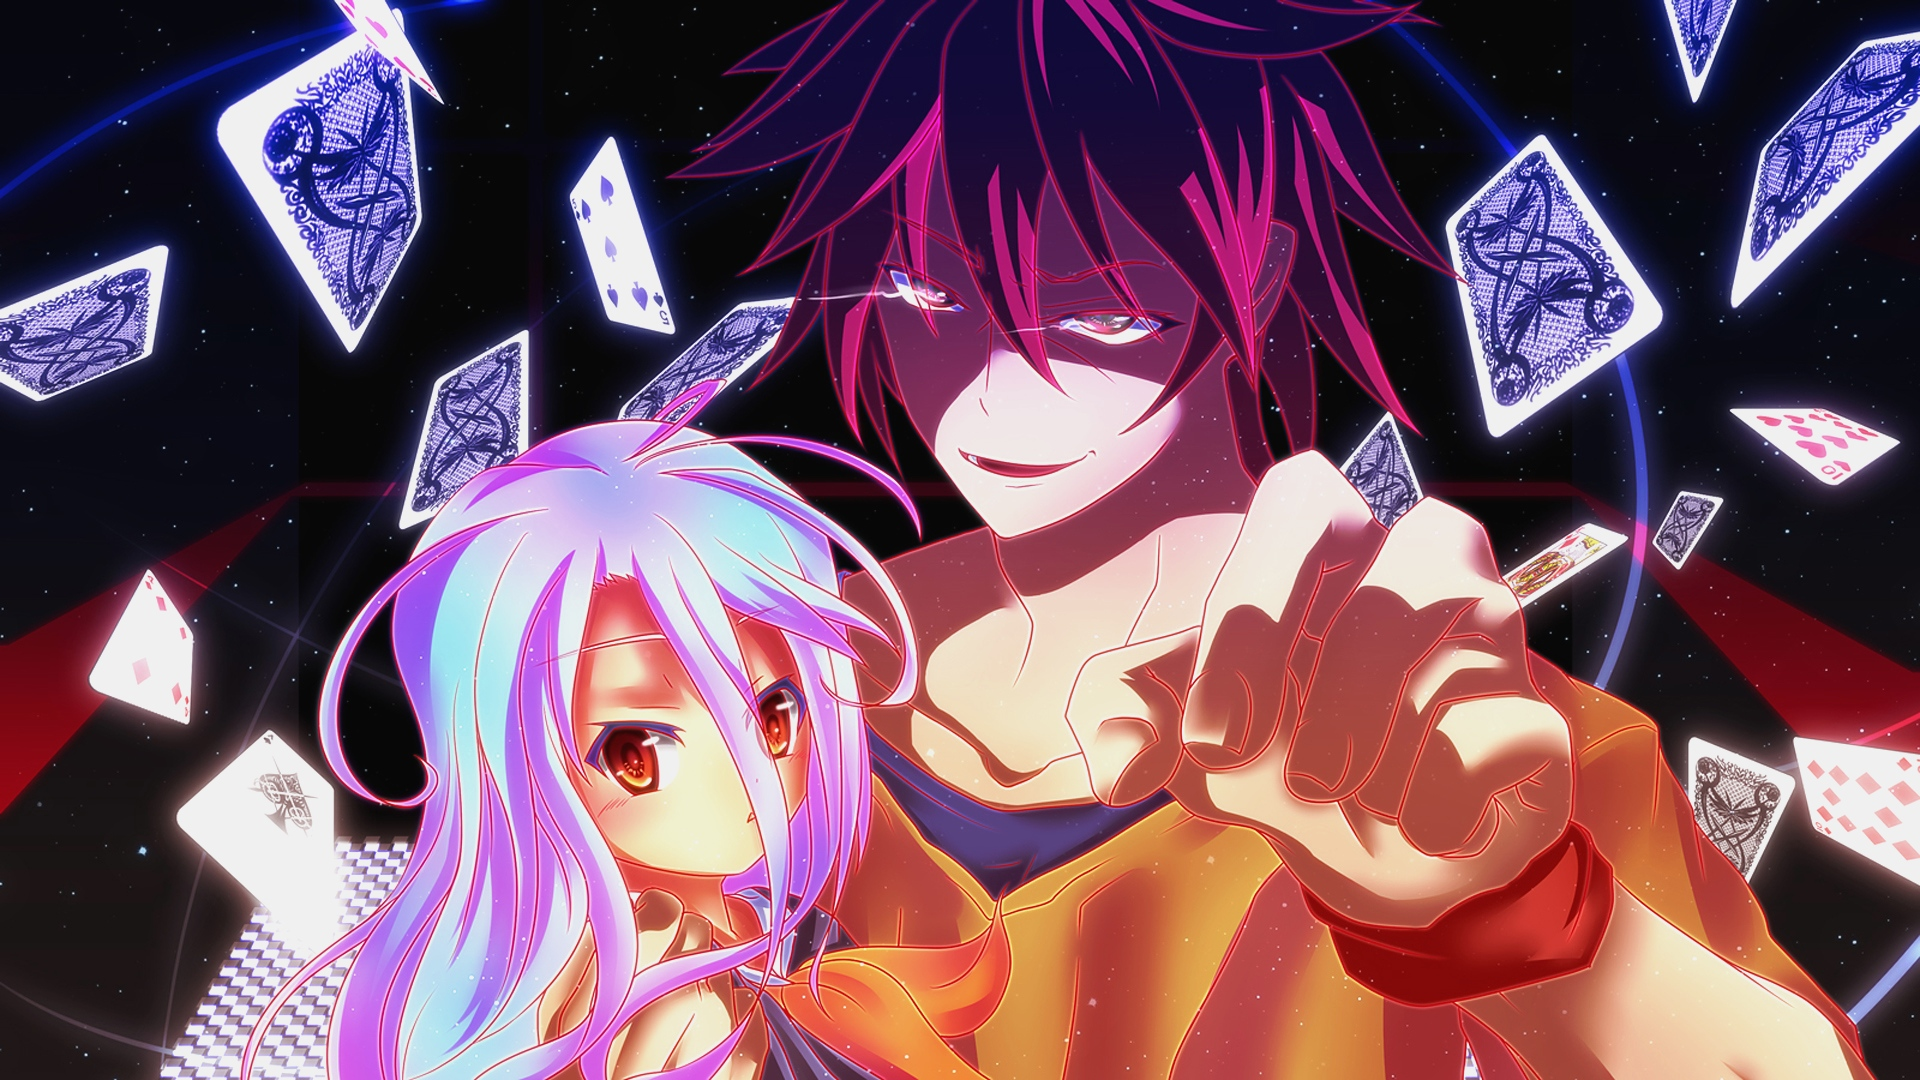 Shiro And Sora No Game No Life Anime Hd 1080p Wallpaper No Game